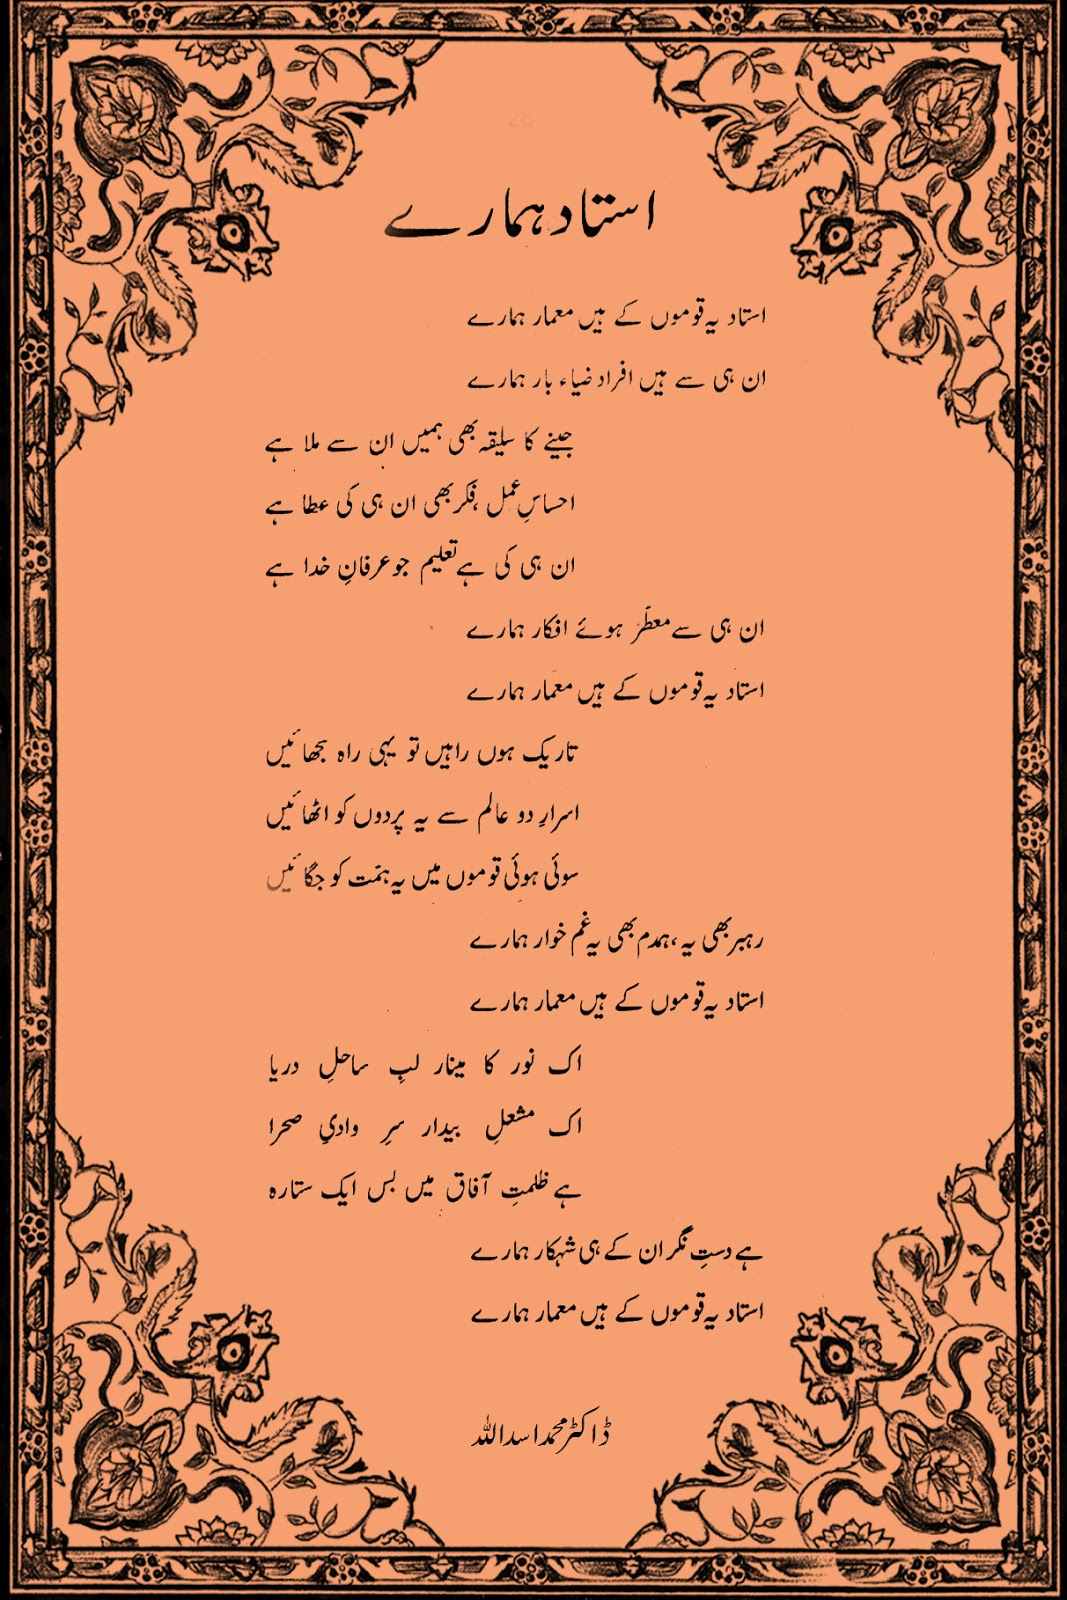 teachers day poems in urdu - photo #1